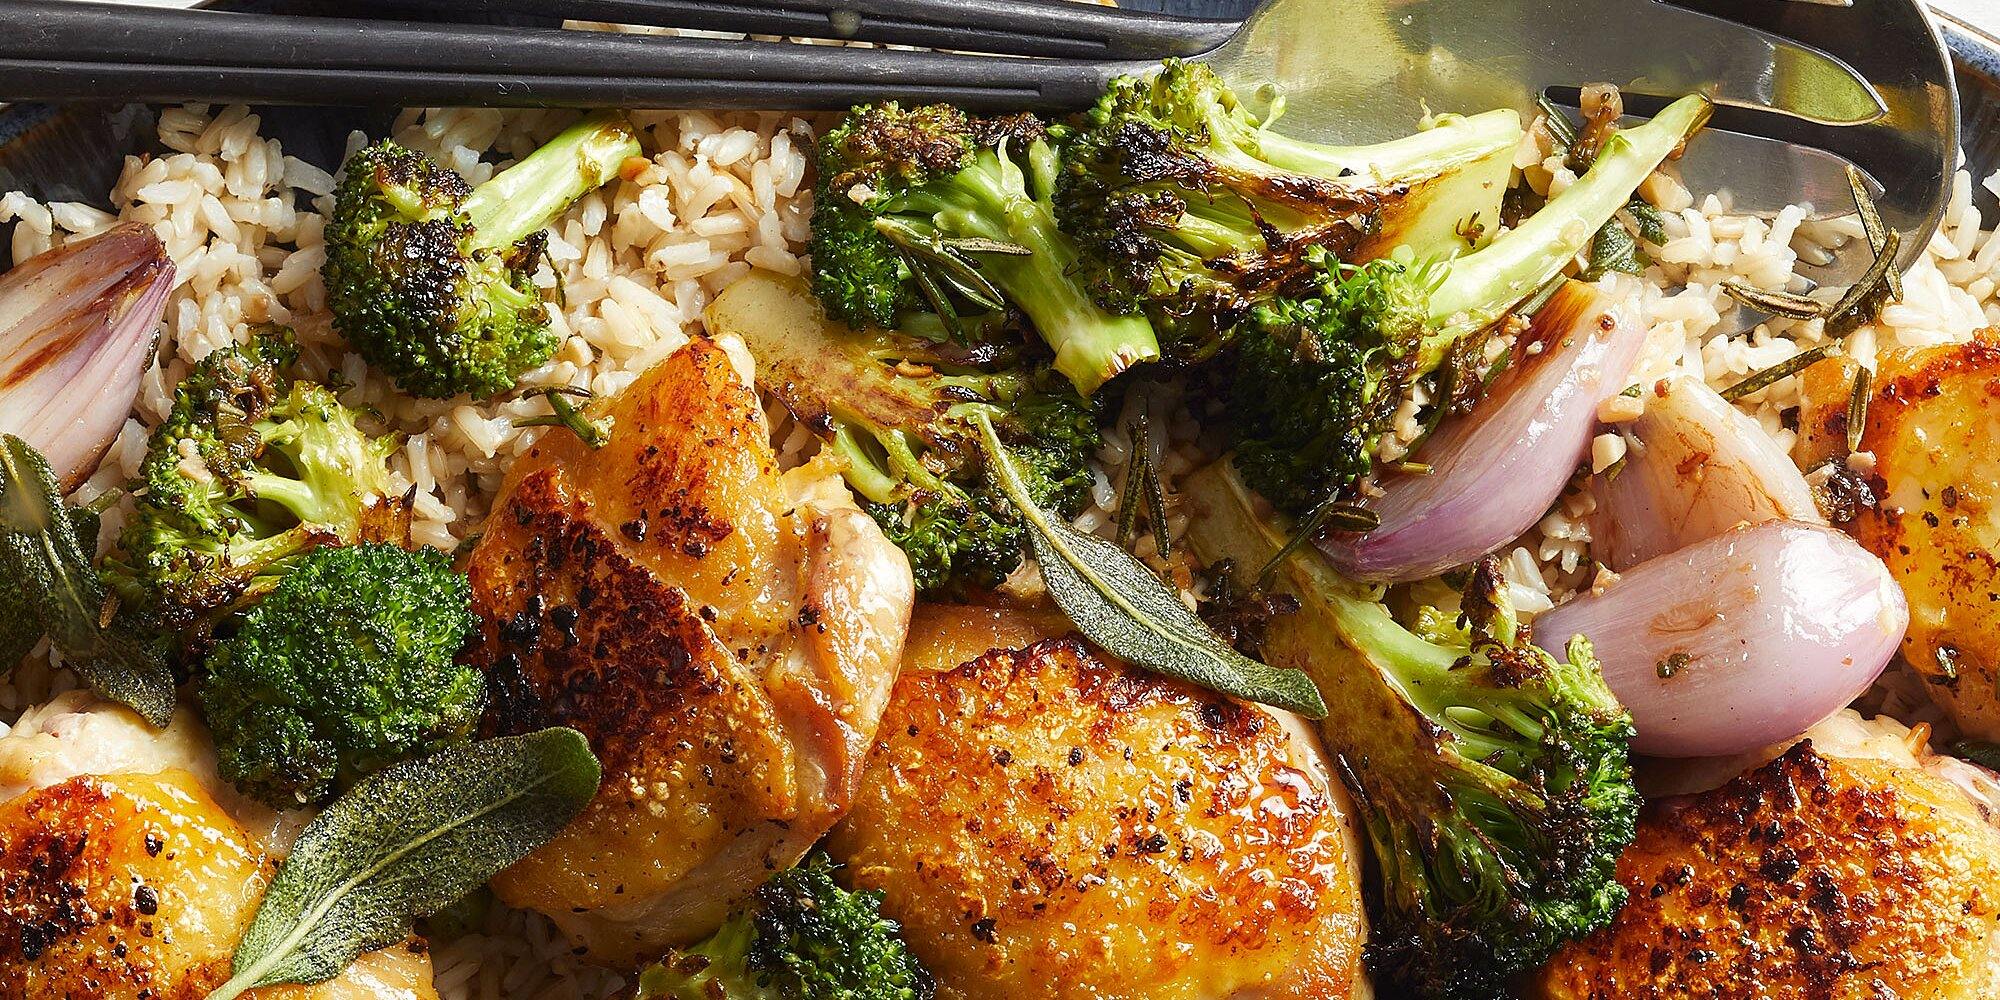 Chicken & Broccoli with Herb Butter Sauce